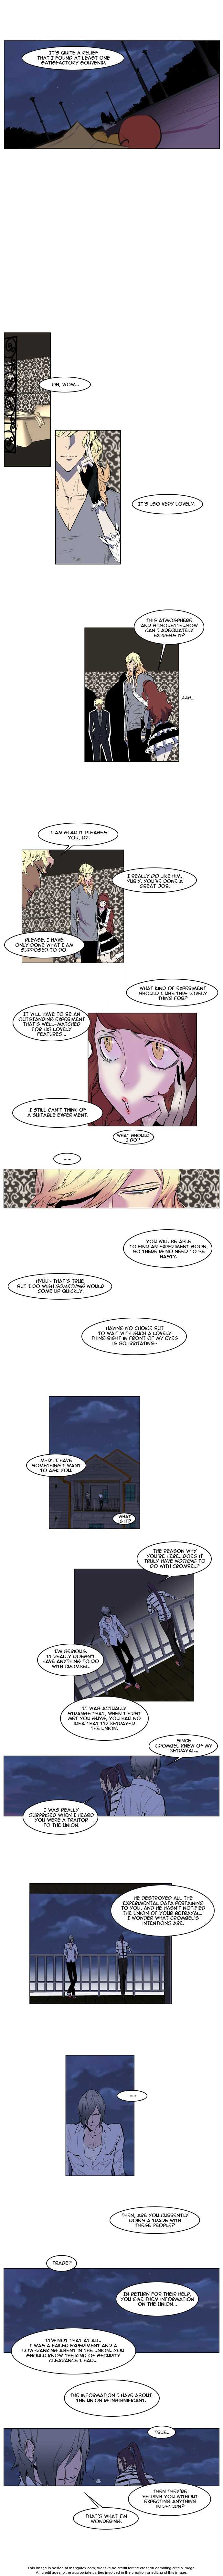 Noblesse 143 Page 2